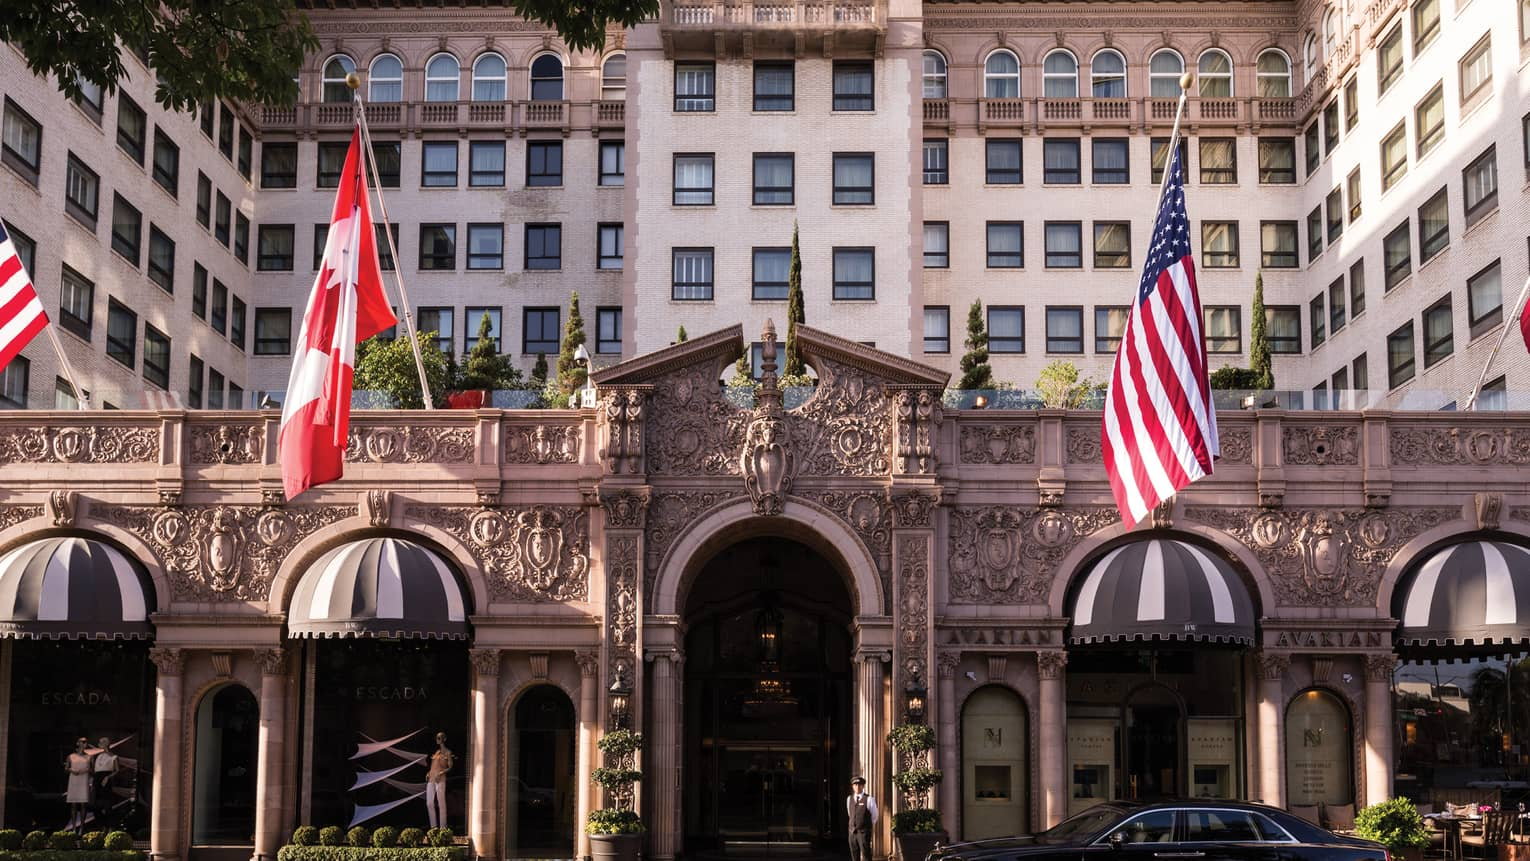 Four Seasons Hotel Beverly Wilshire grand front entrance with American, Canadian flags